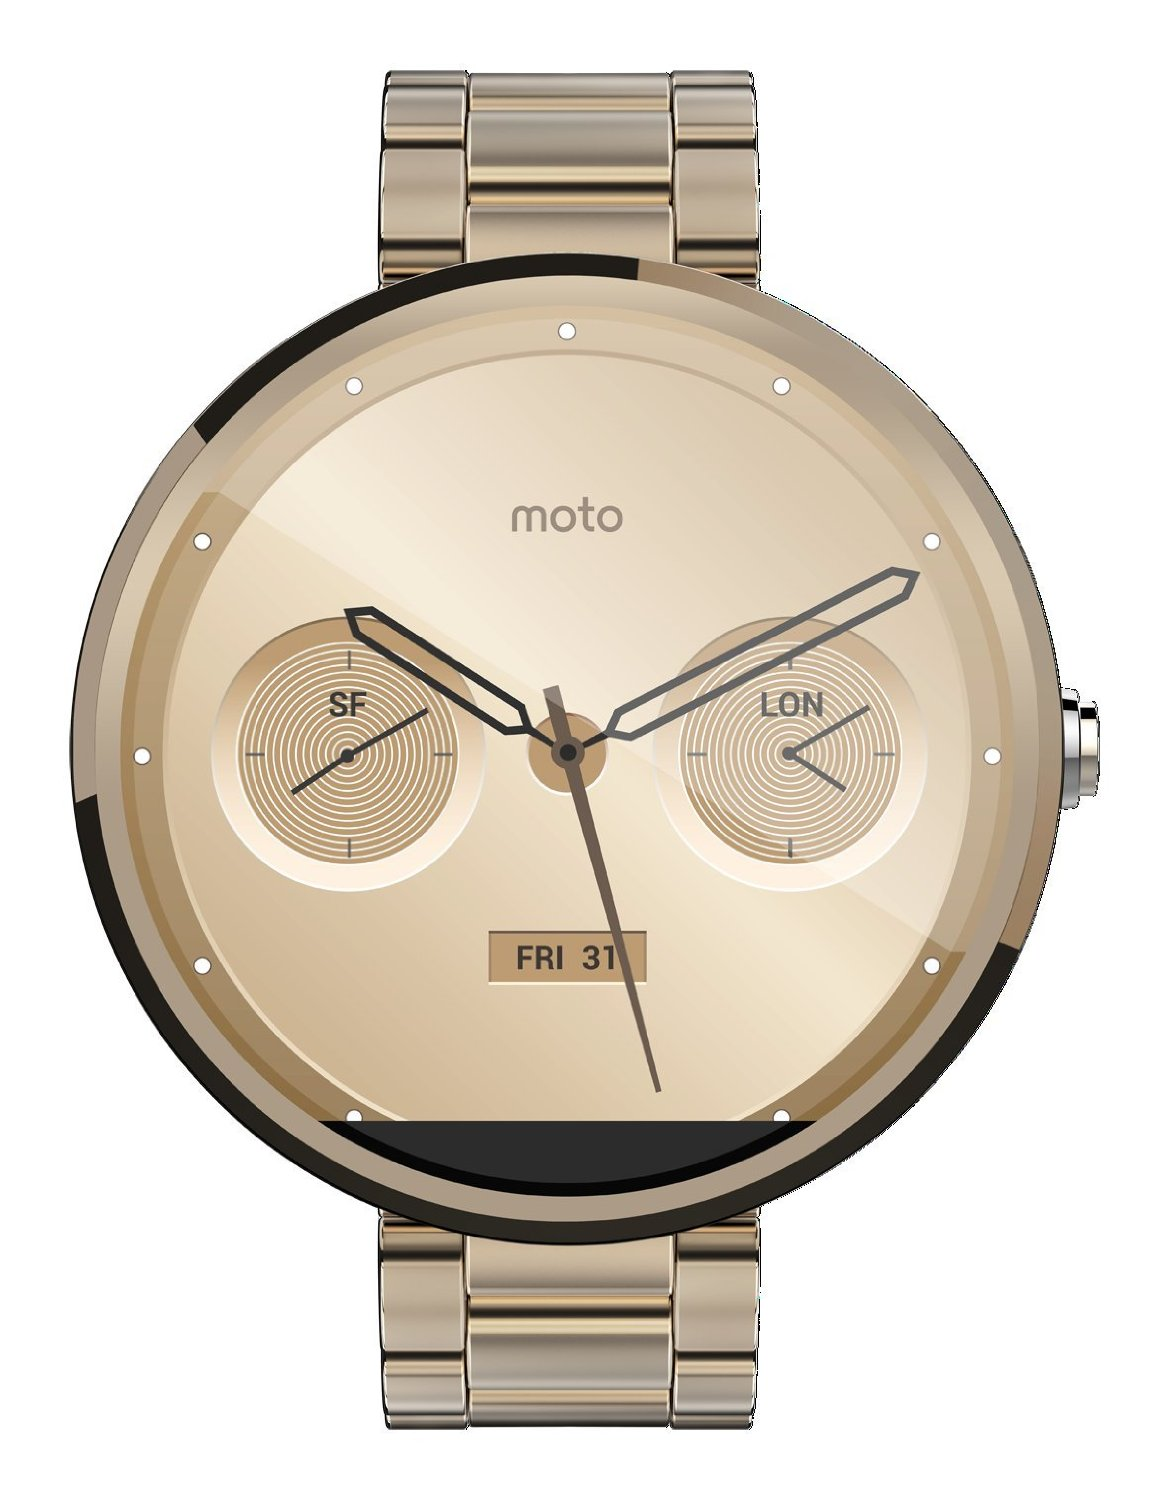 fathers day gifts, smartwatches, moto 360